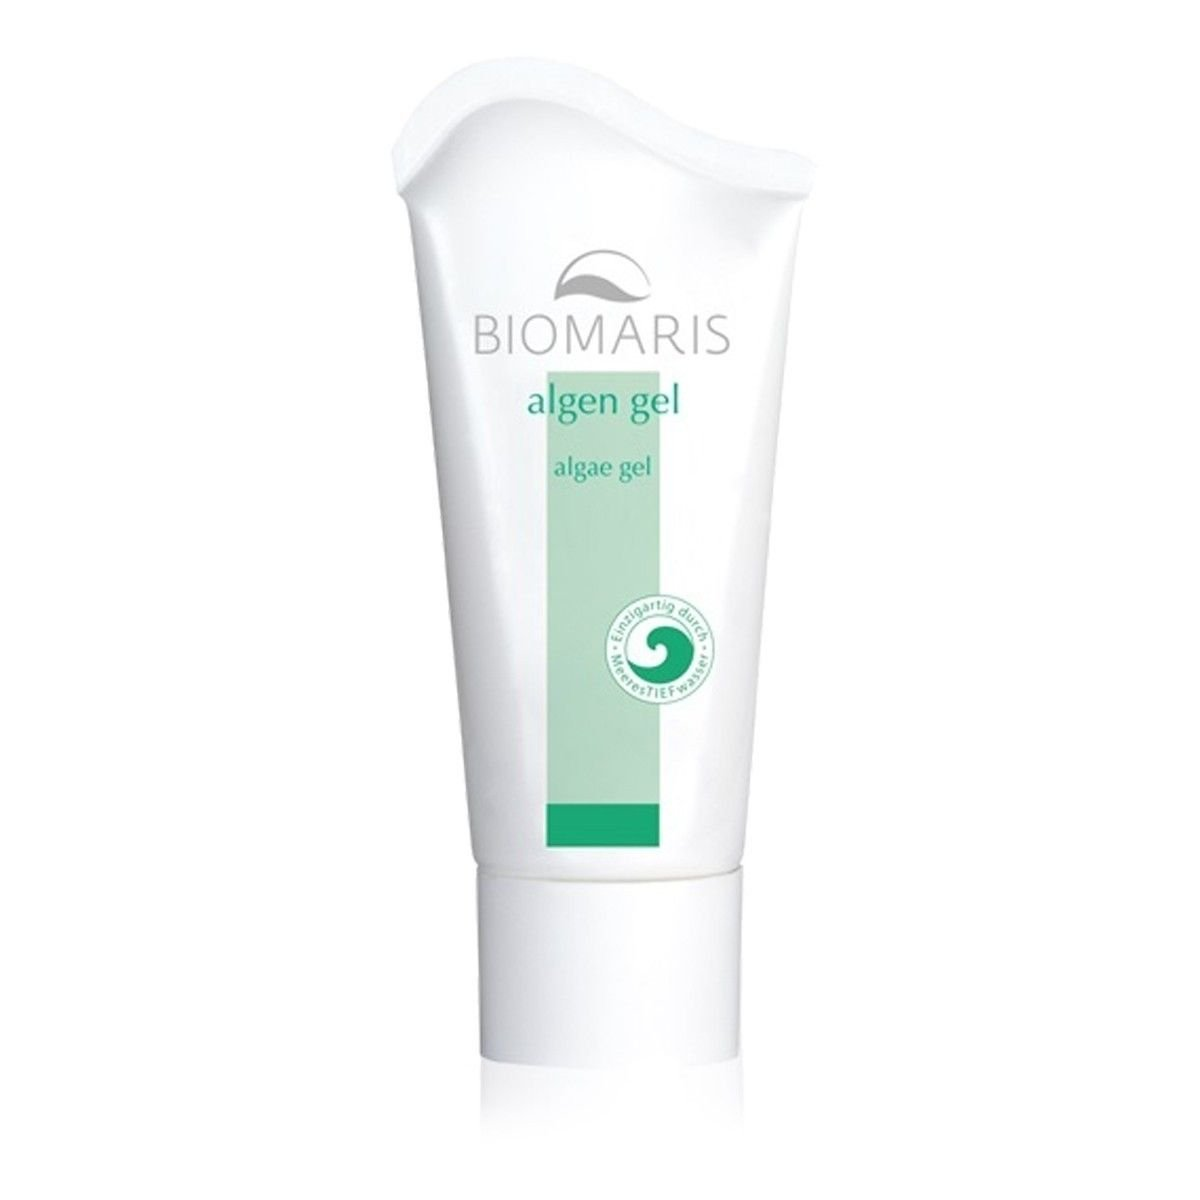 Afbeelding van Biomaris Algae Gel 50 ml Classic Line Beauty